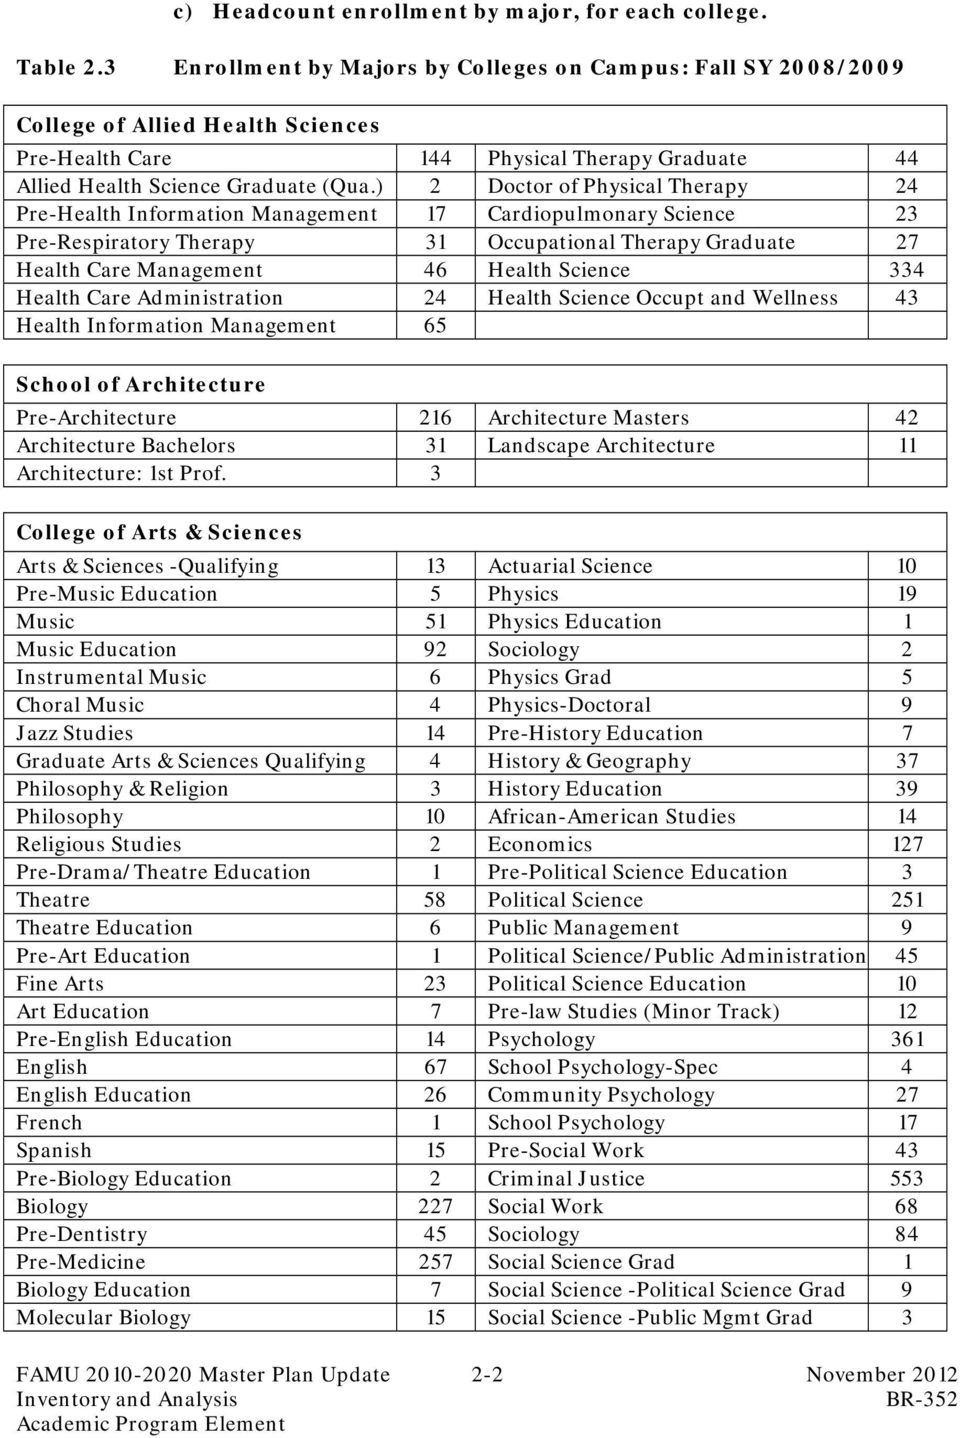 ) 2 Doctor of Physical Therapy 24 Pre-Health Information anagement 17 Cardiopulmonary Science 23 Pre-Respiratory Therapy 31 Occupational Therapy Graduate 27 Health Care anagement 46 Health Science